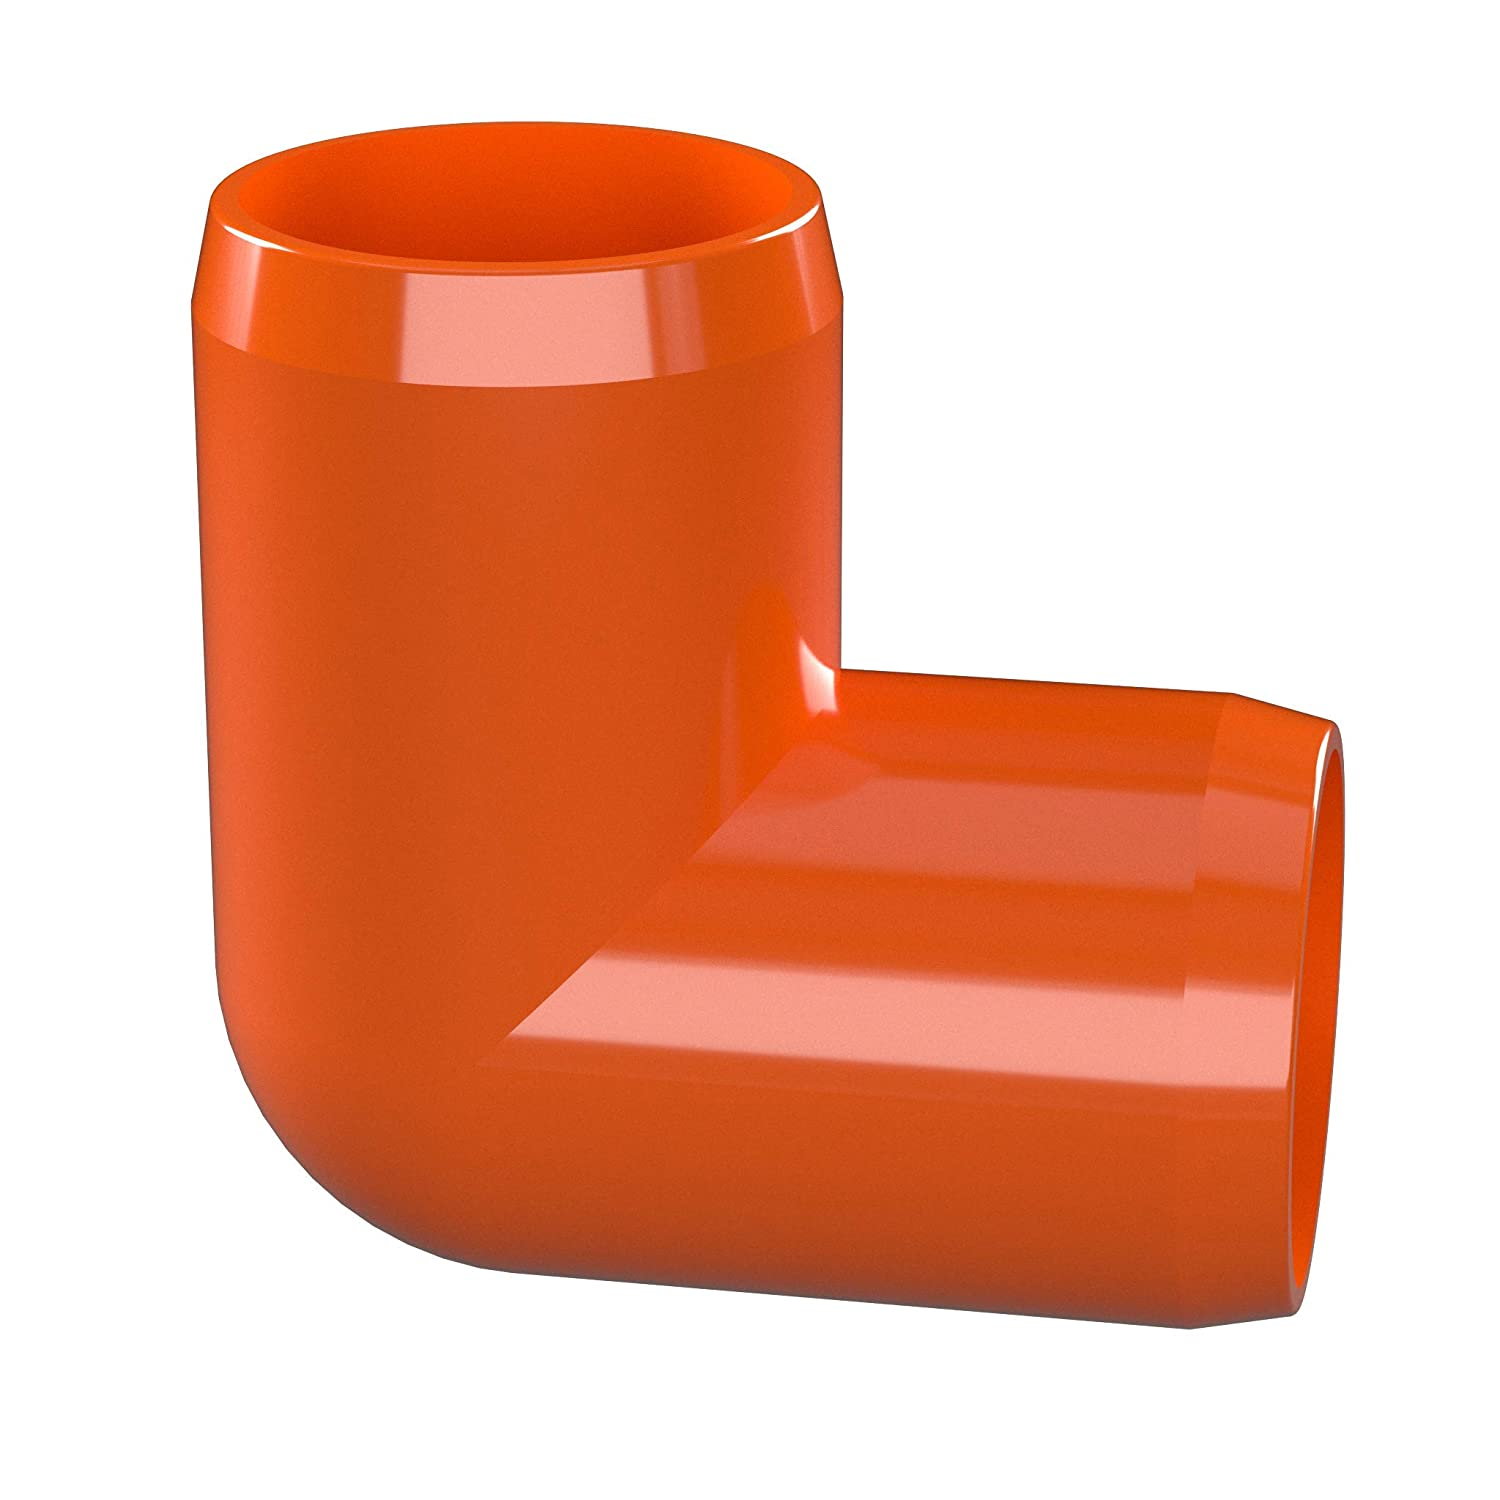 Furniture Grade Orange 1 Size Pack of 4 1 Size FORMUFIT F00190E-OR-4 Elbow PVC Fitting 90 Degree